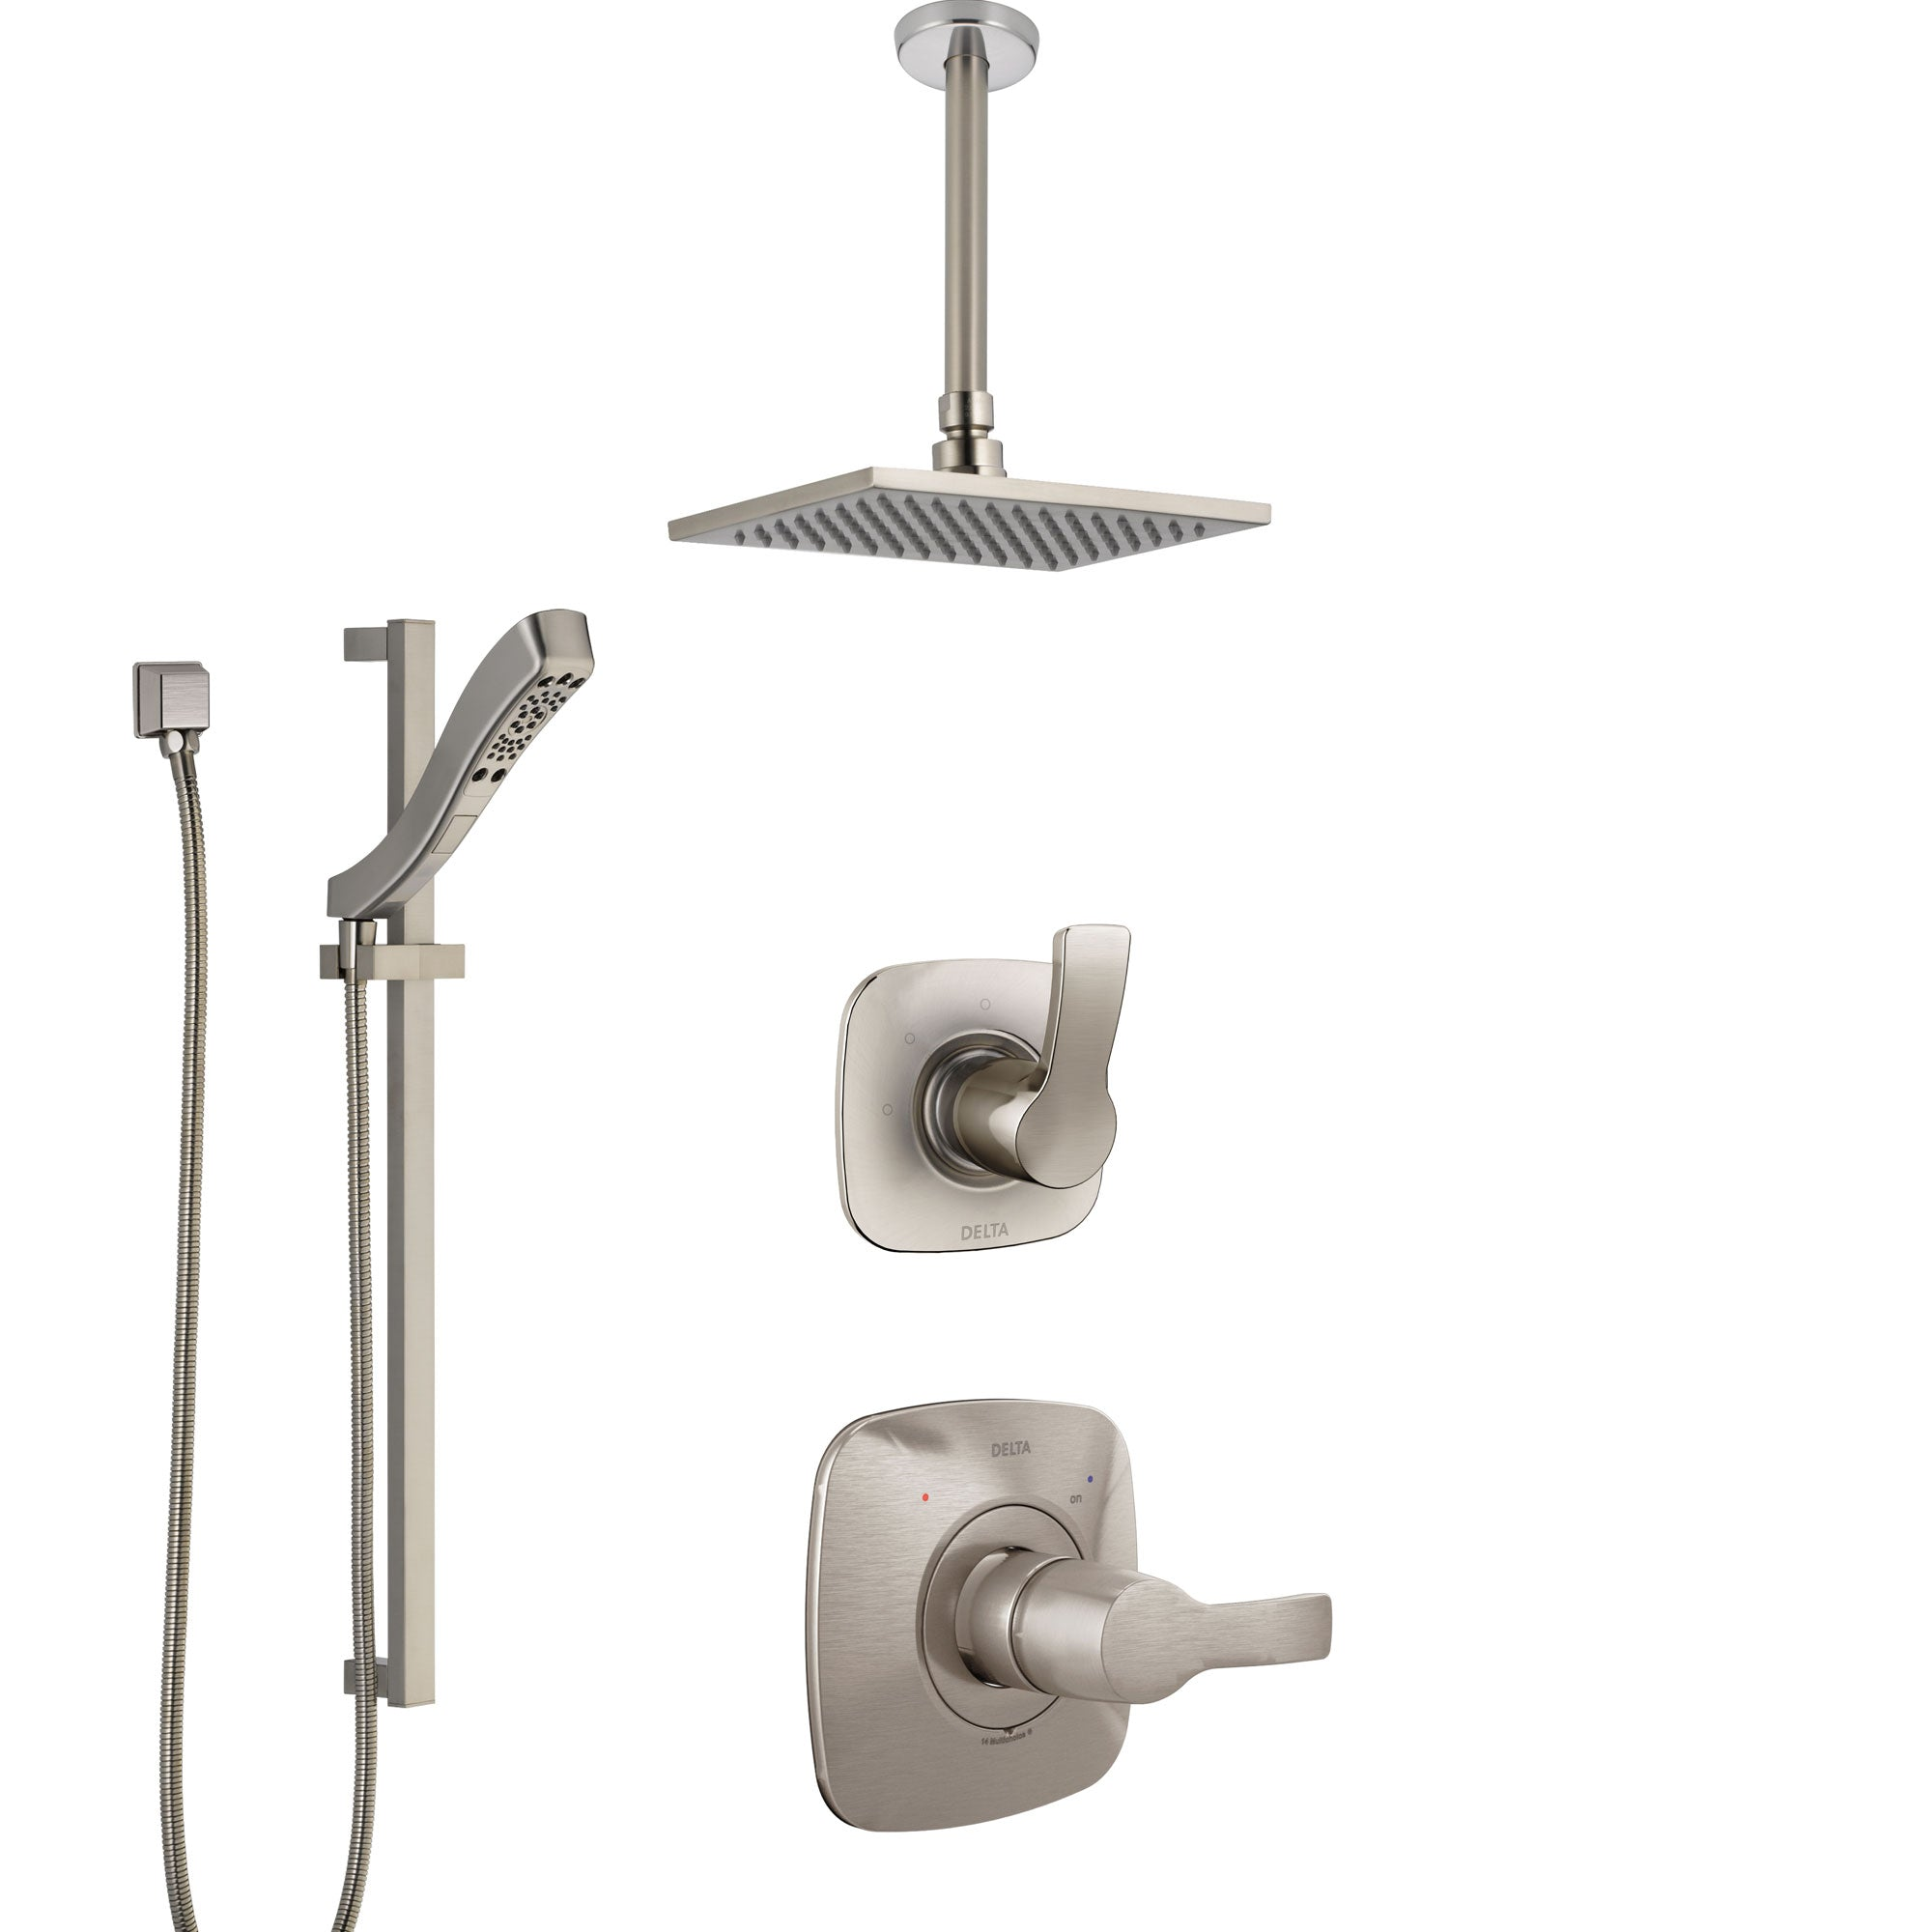 Delta Tesla Stainless Steel Finish Shower System with Control Handle, Diverter, Ceiling Mount Showerhead, and Hand Shower with Slidebar SS1452SS5